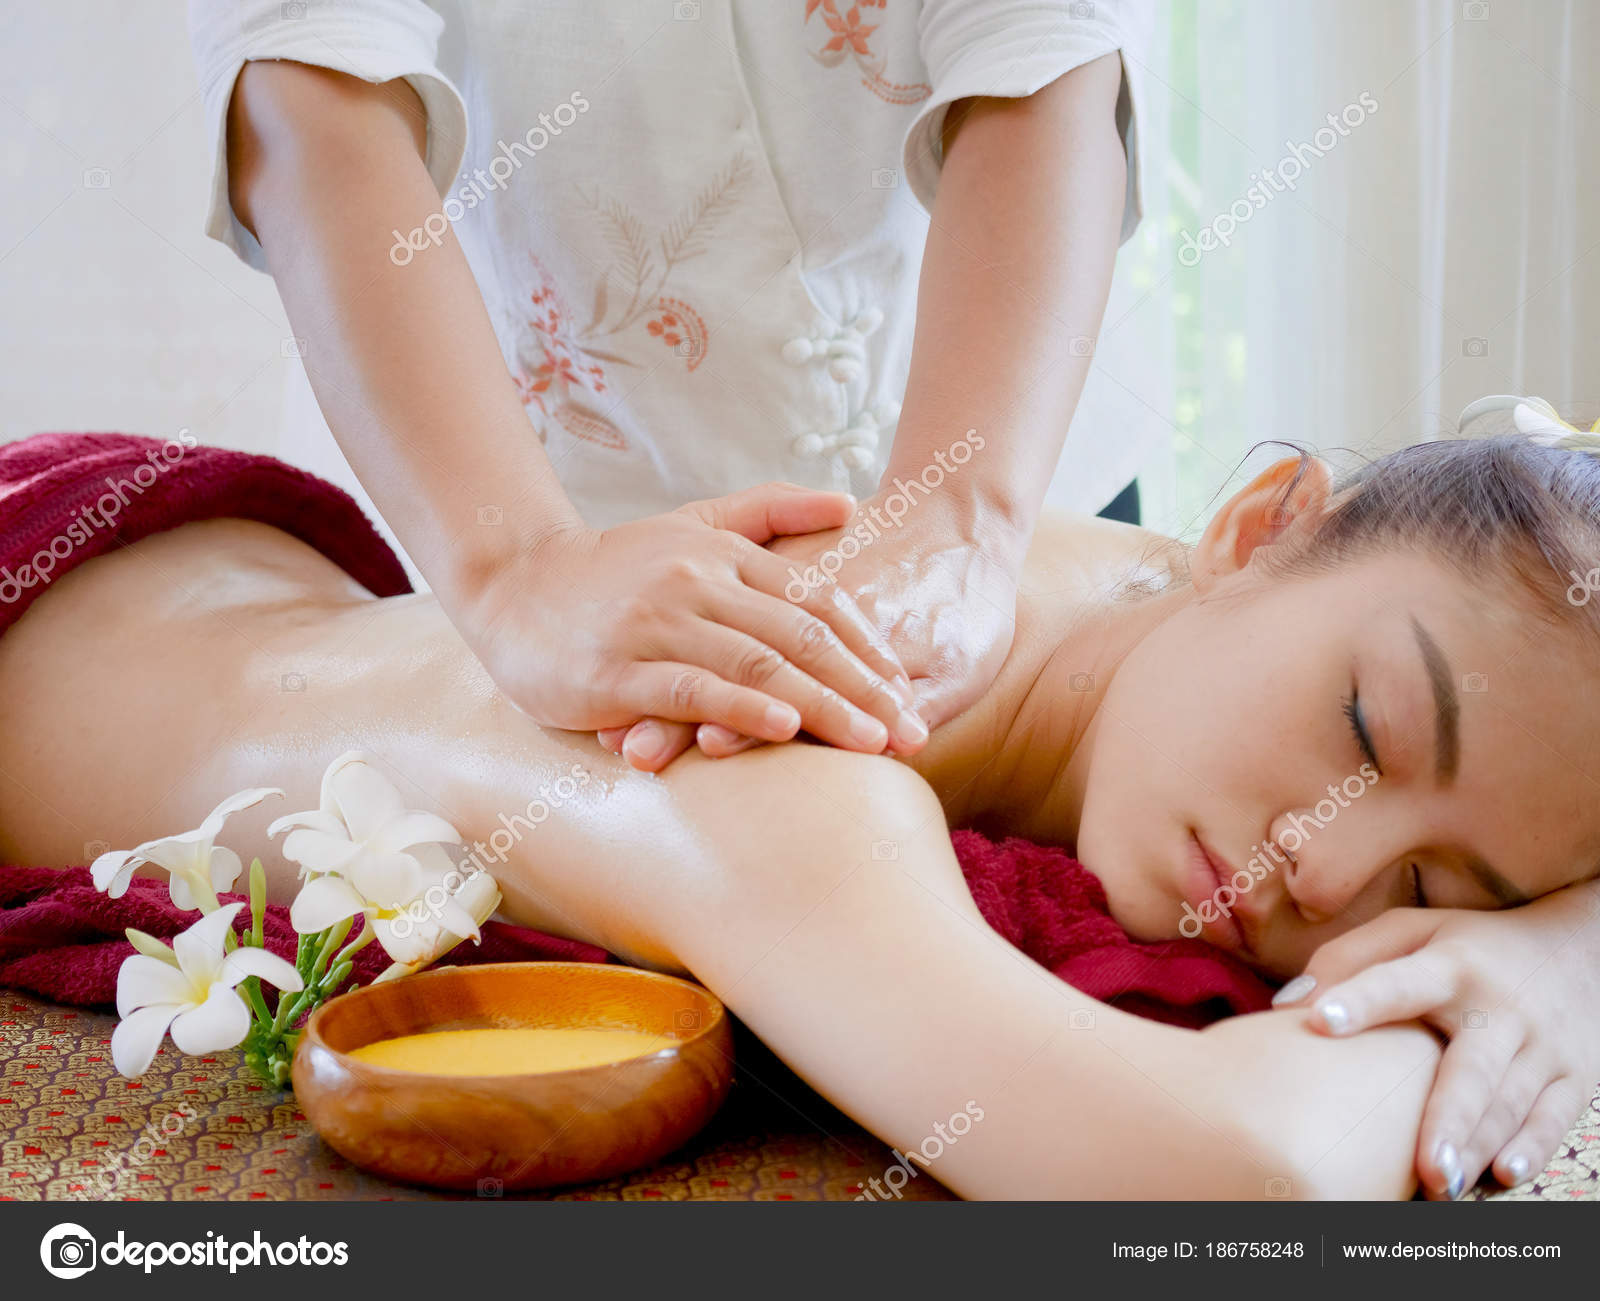 Salon Massage Body Body Woman Having Spa Body Massage Treatment Spa Salon Massage